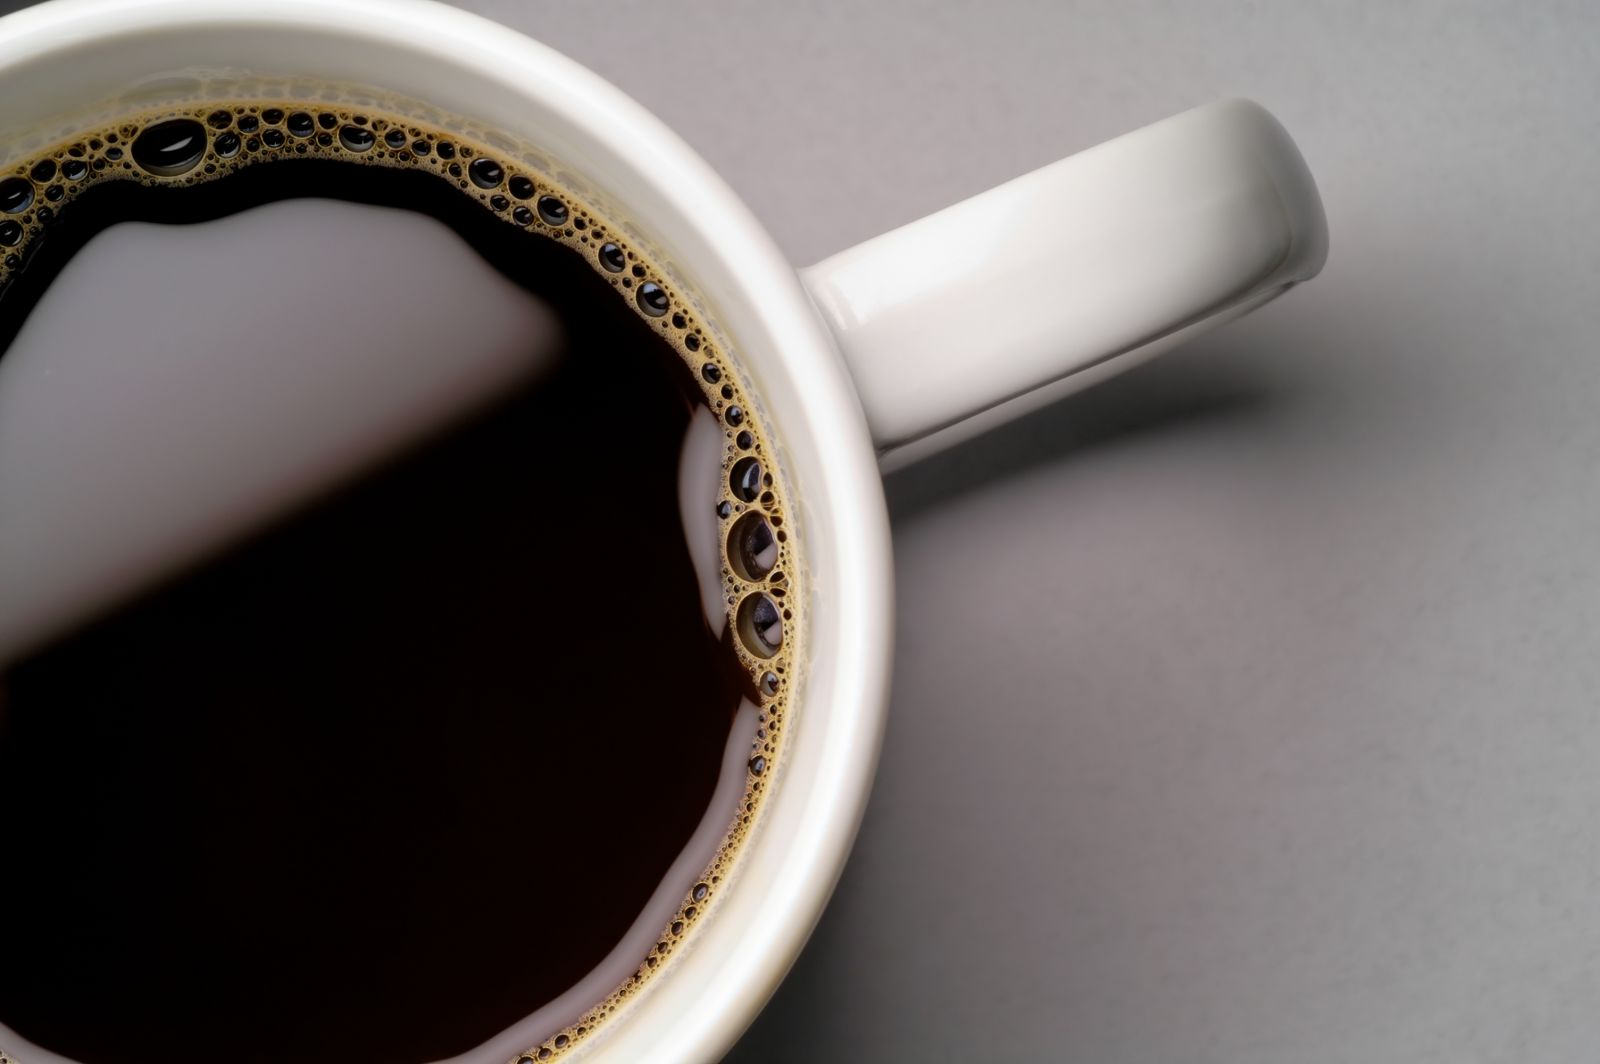 Can Coffee Really Stunt Your Growth? - Harvard Health